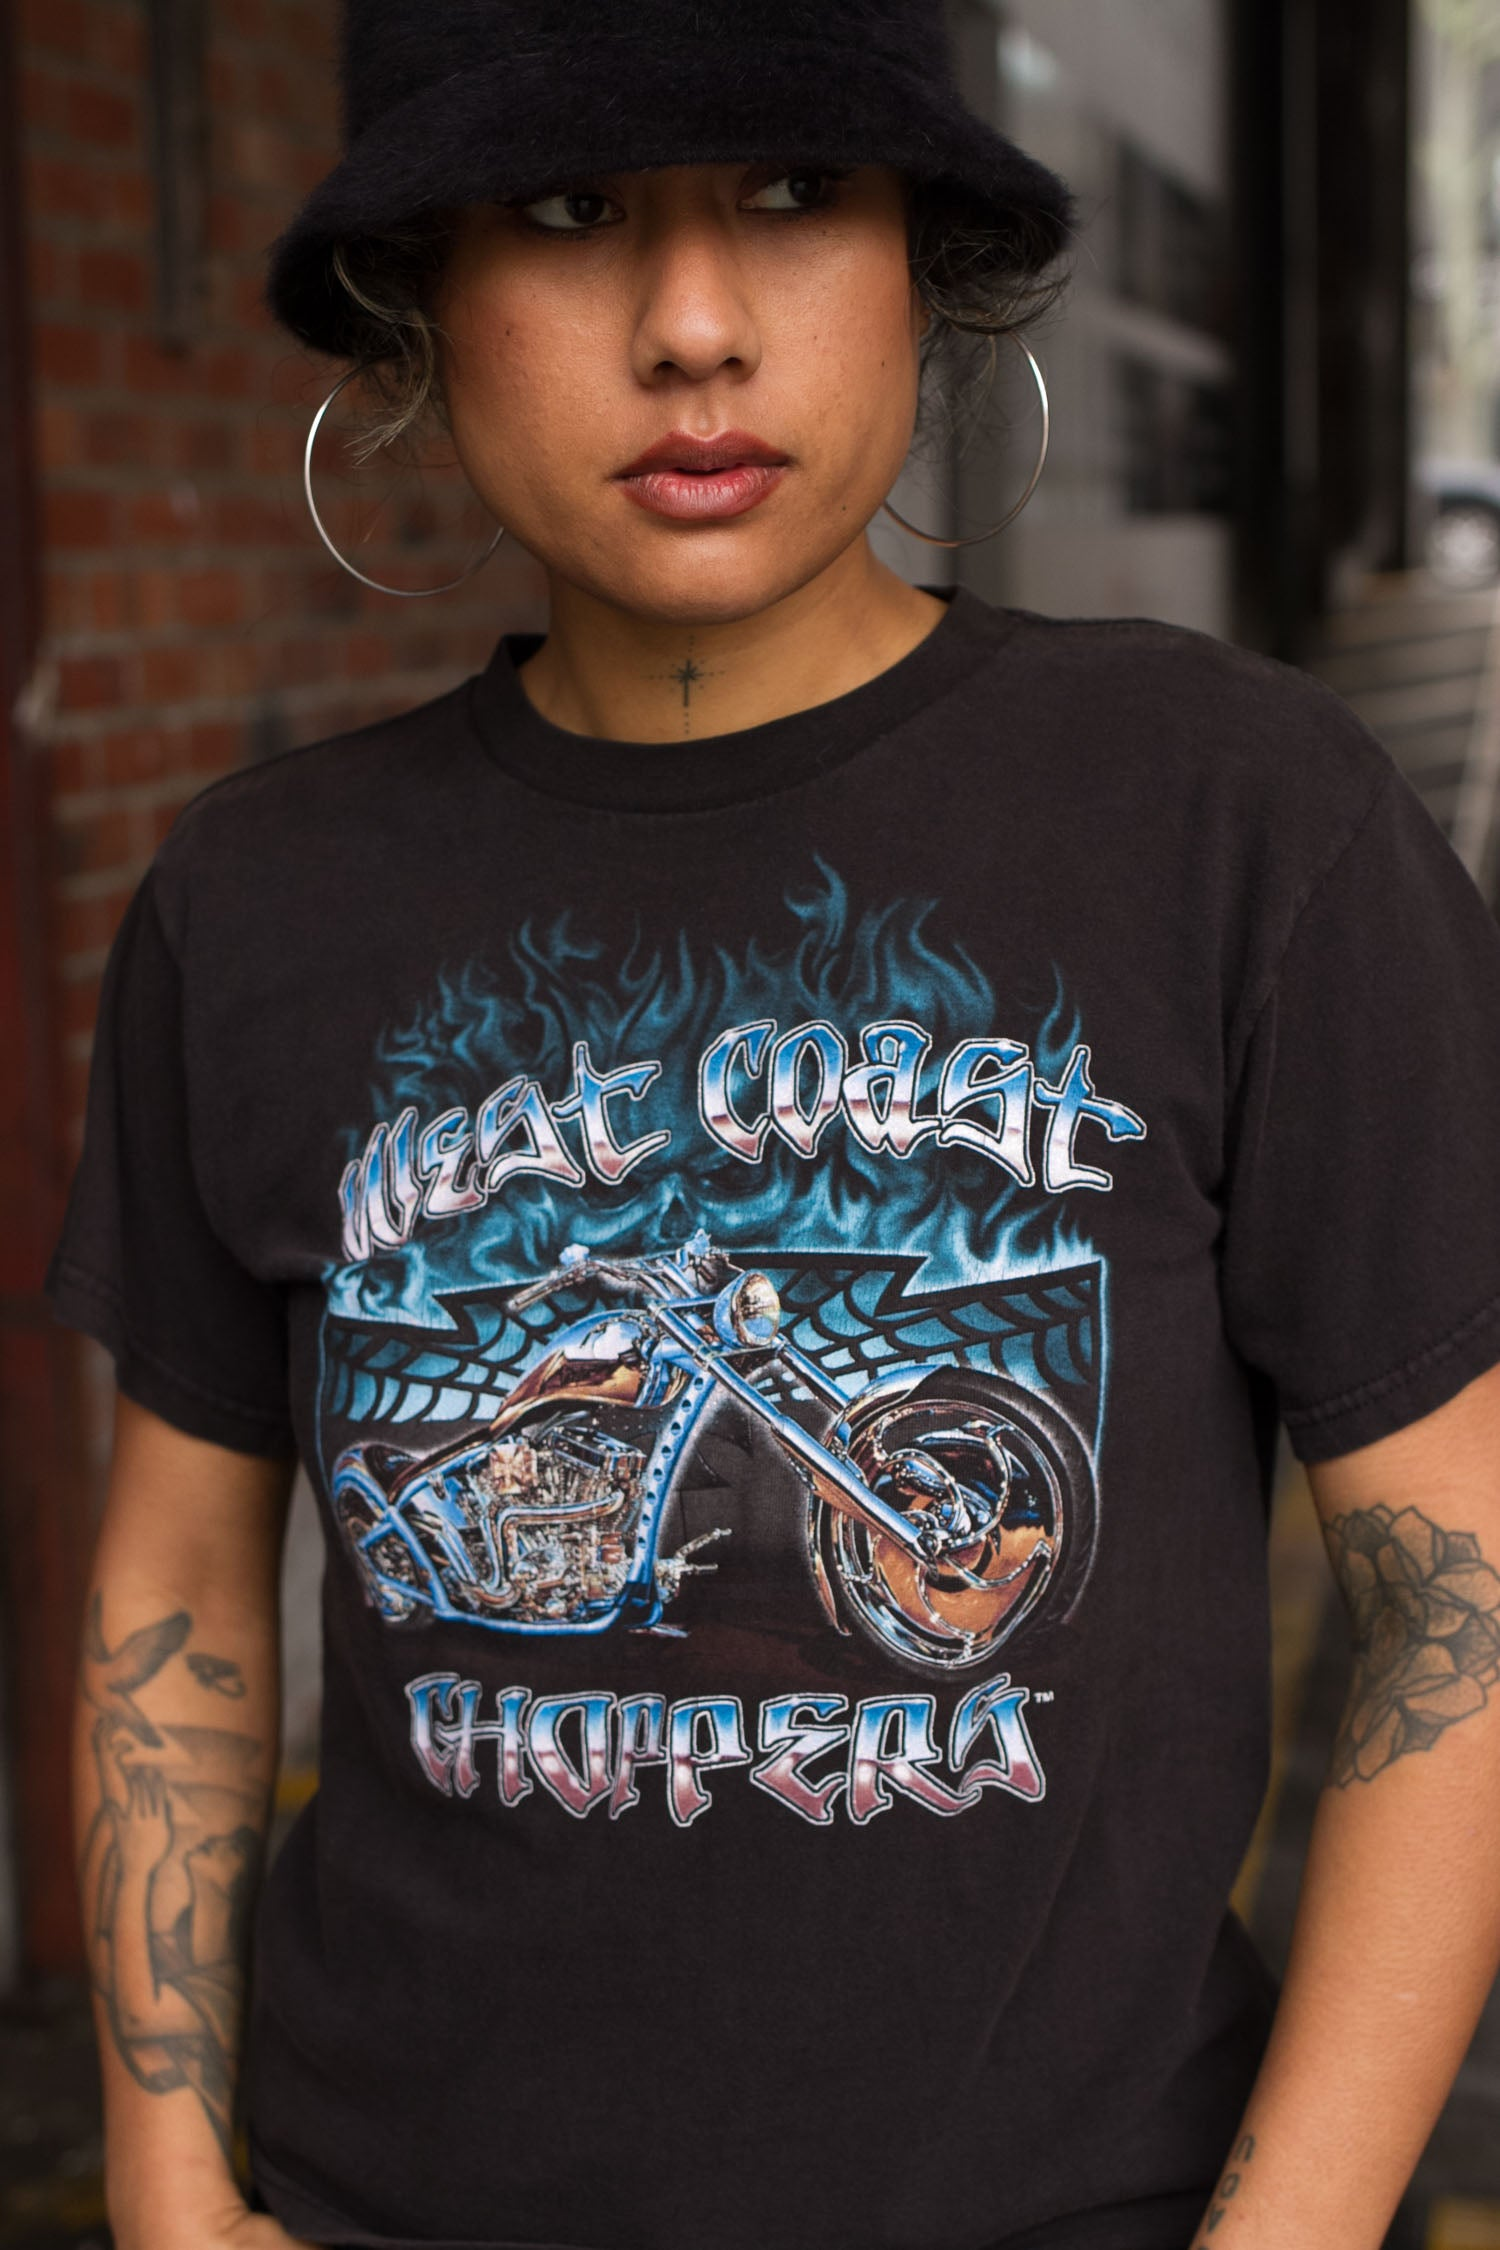 Vintage West Coast Choppers Tee